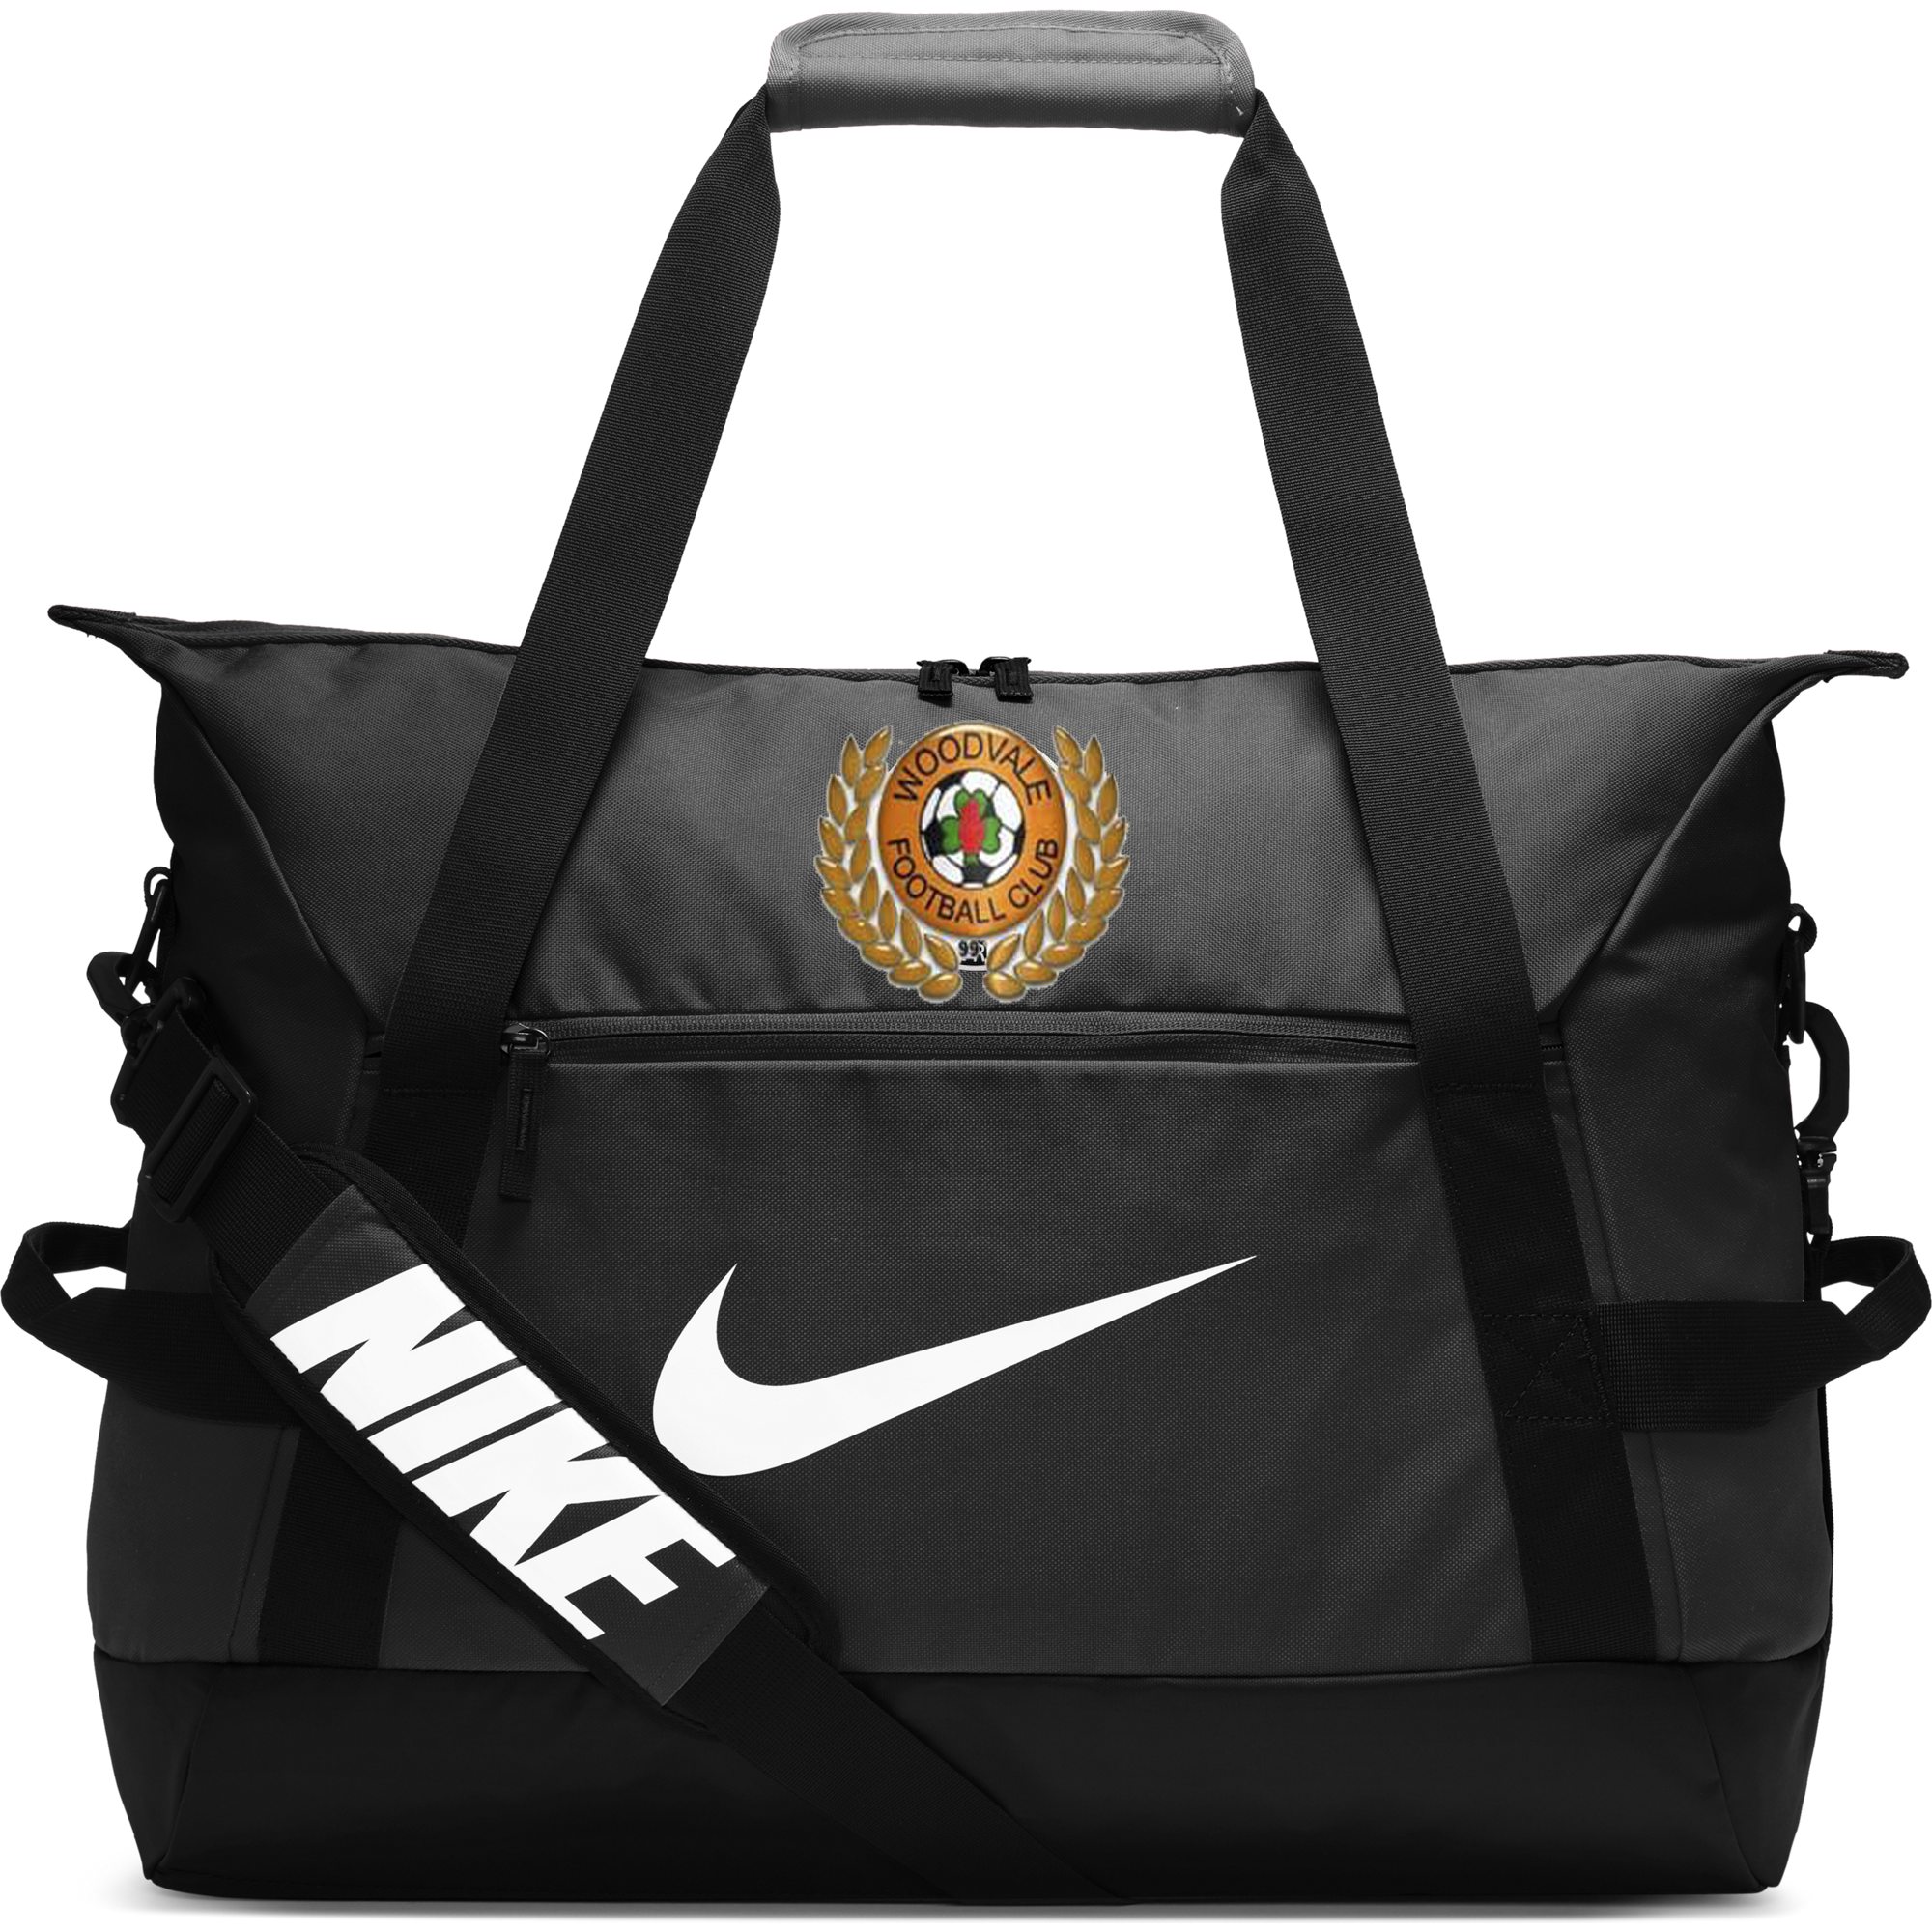 woodvale duffel bag 38970 p